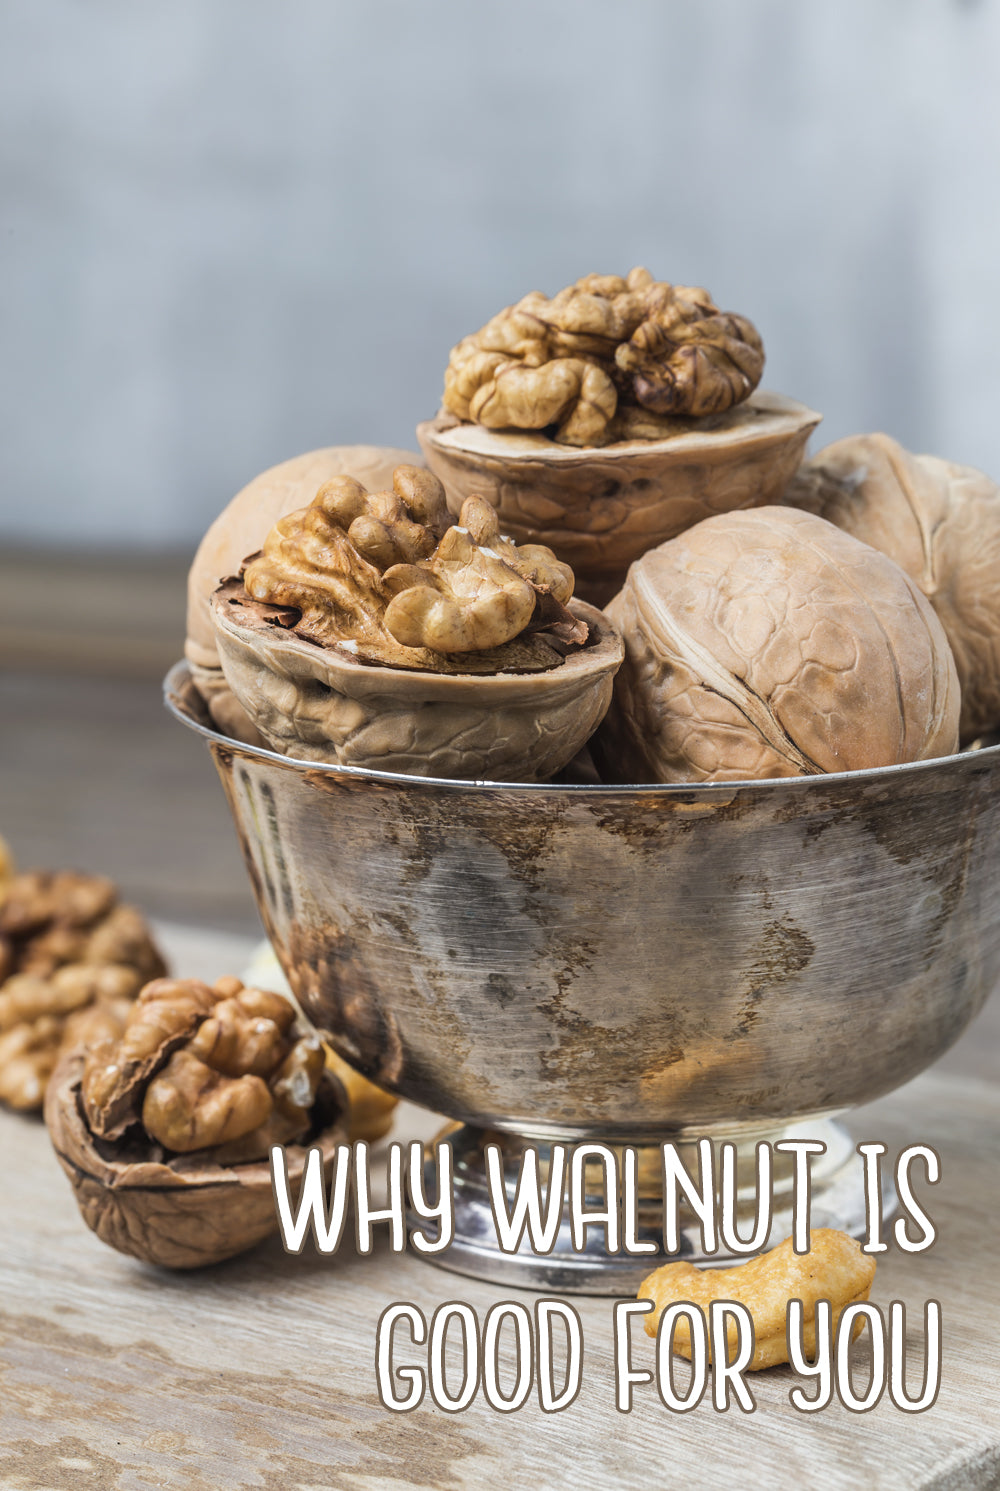 Why walnuts are good for you healthy life choices